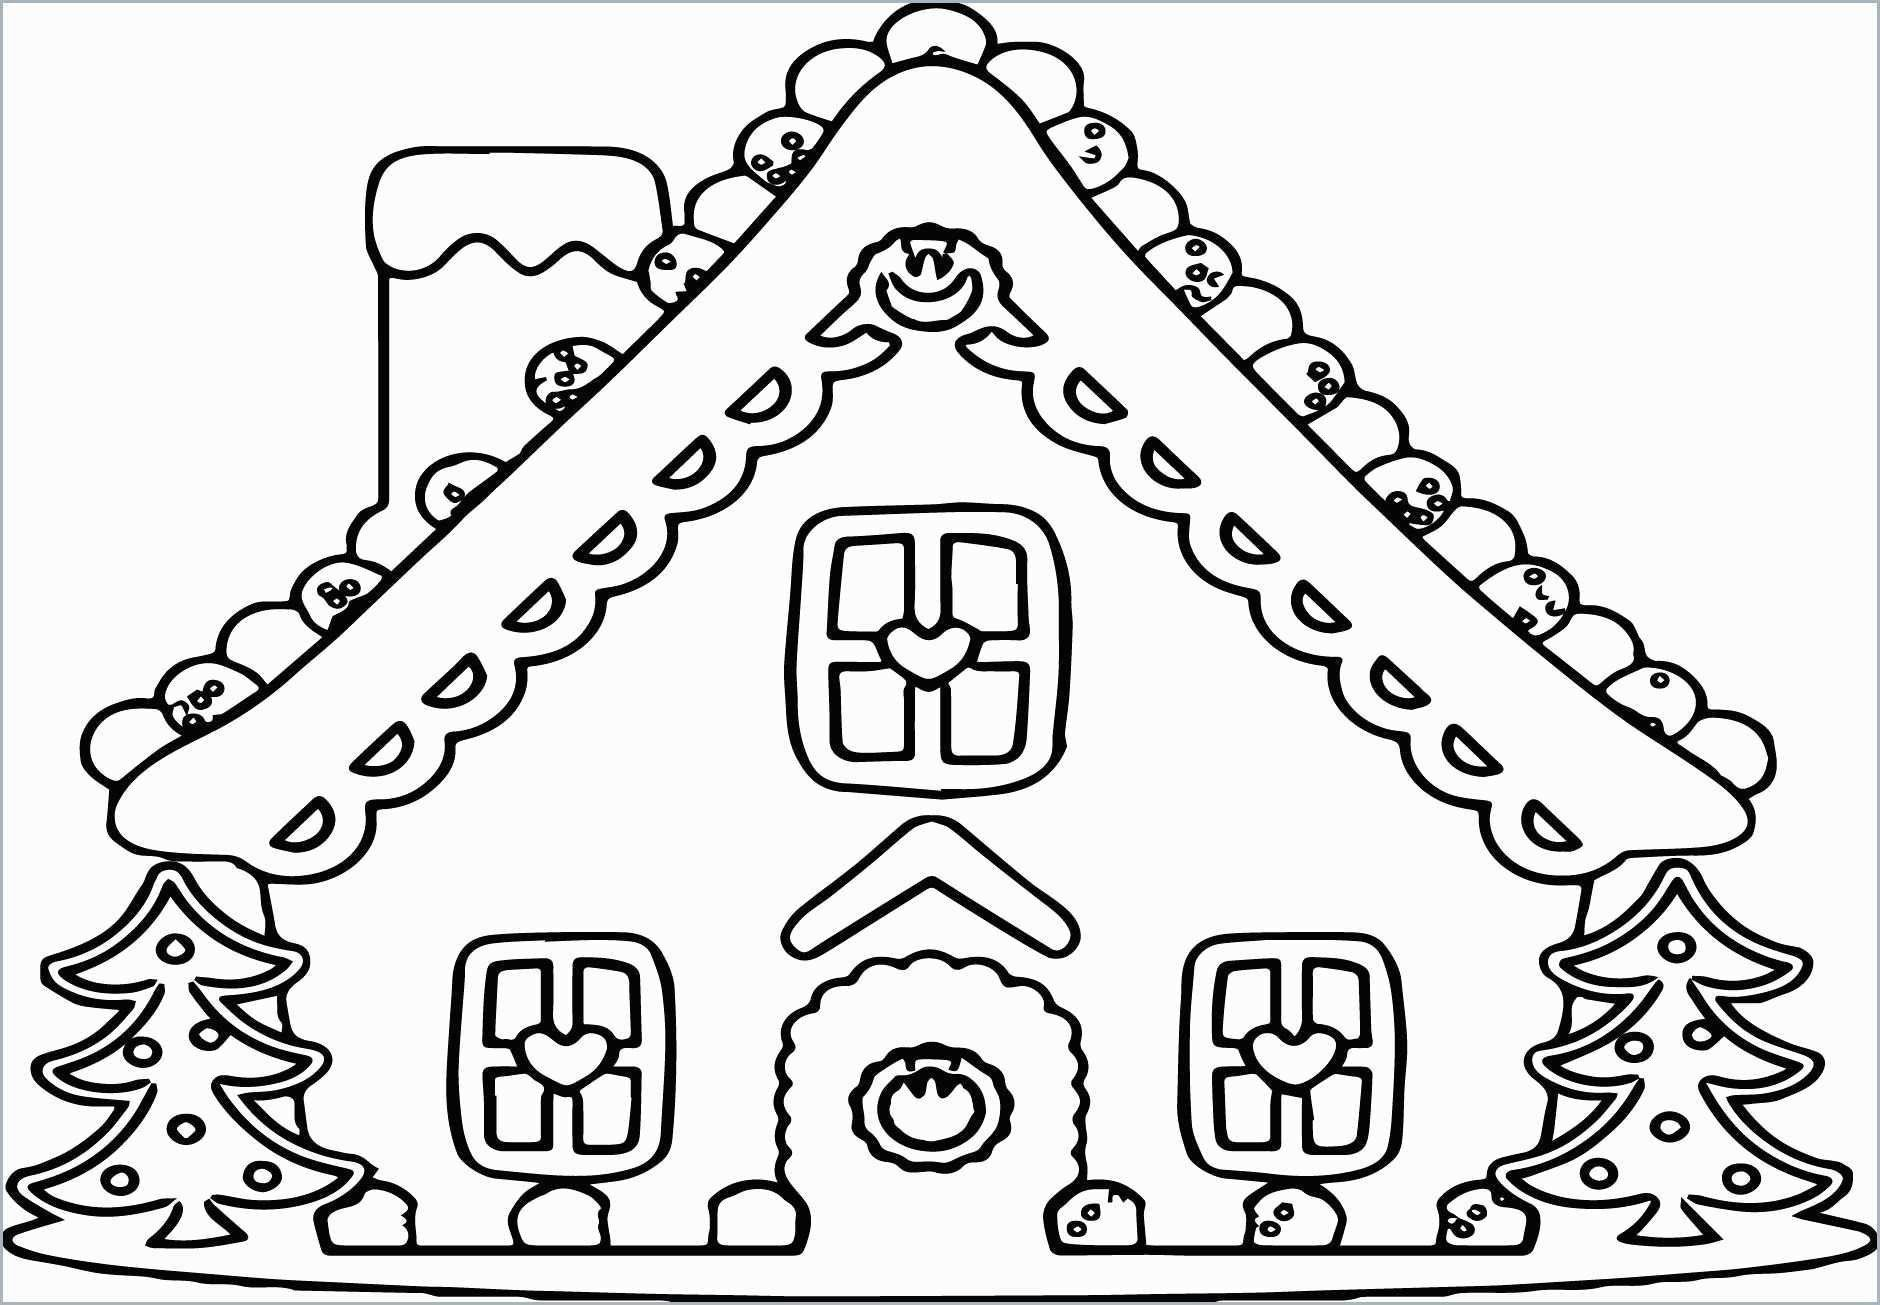 Gingerbread House Coloring Page Unique Gingerbread House Coloring Pages In 2020 Candy Coloring Pages House Colouring Pages Snowman Coloring Pages